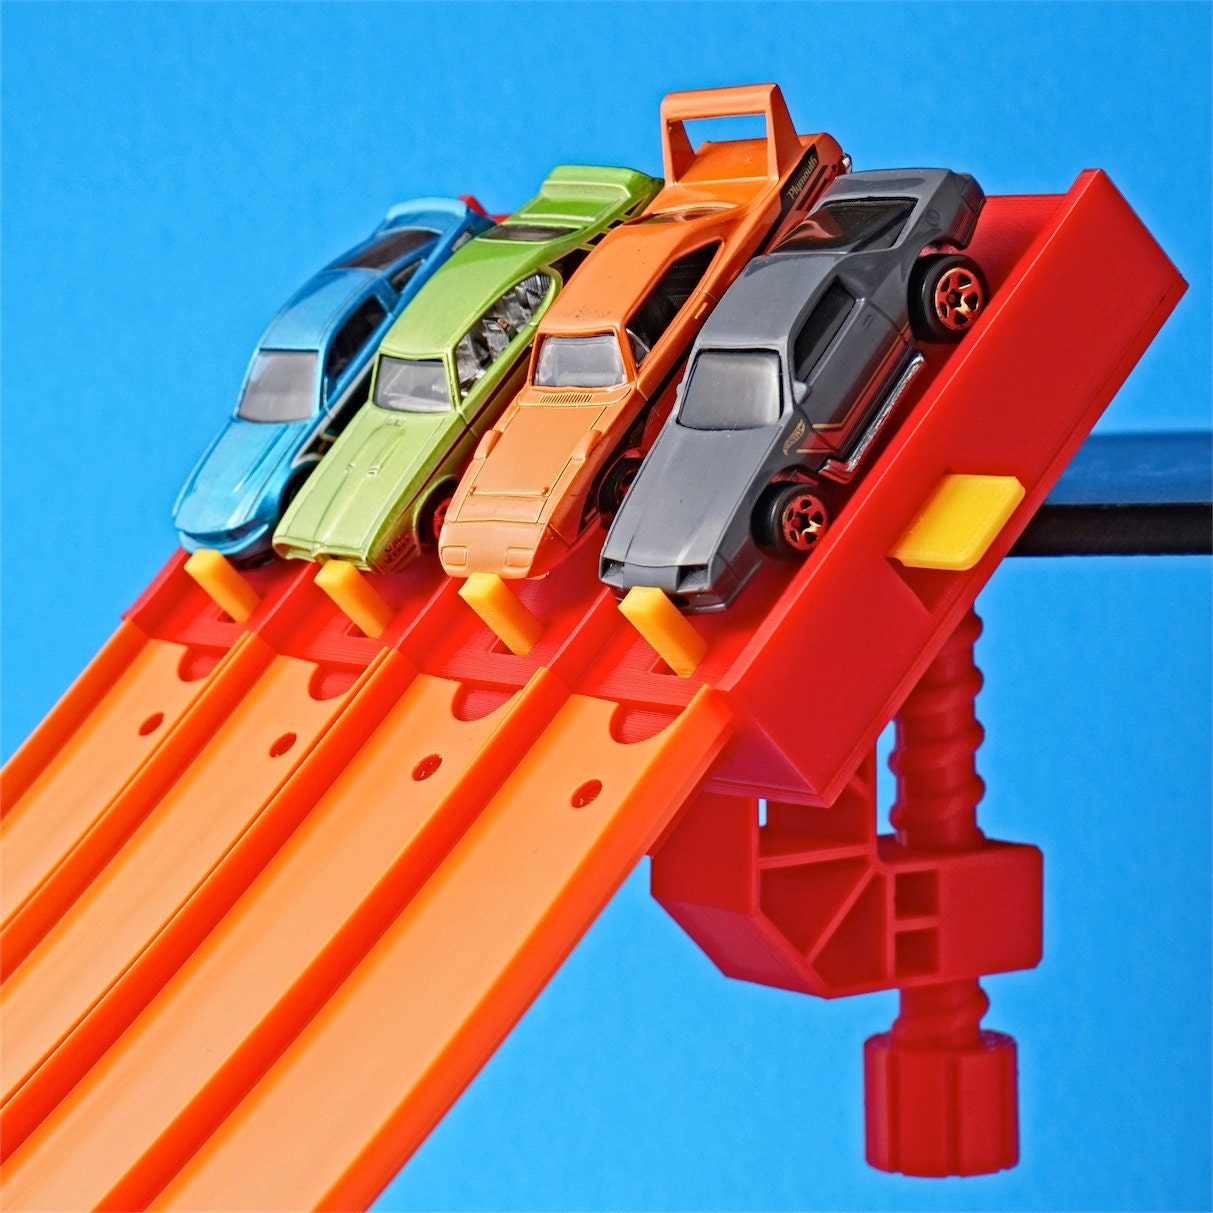 Car Wont Start When It Gets Hot Page1: 4-Lane Start Gate W/Clamp For Hot Wheels Toy Car Track